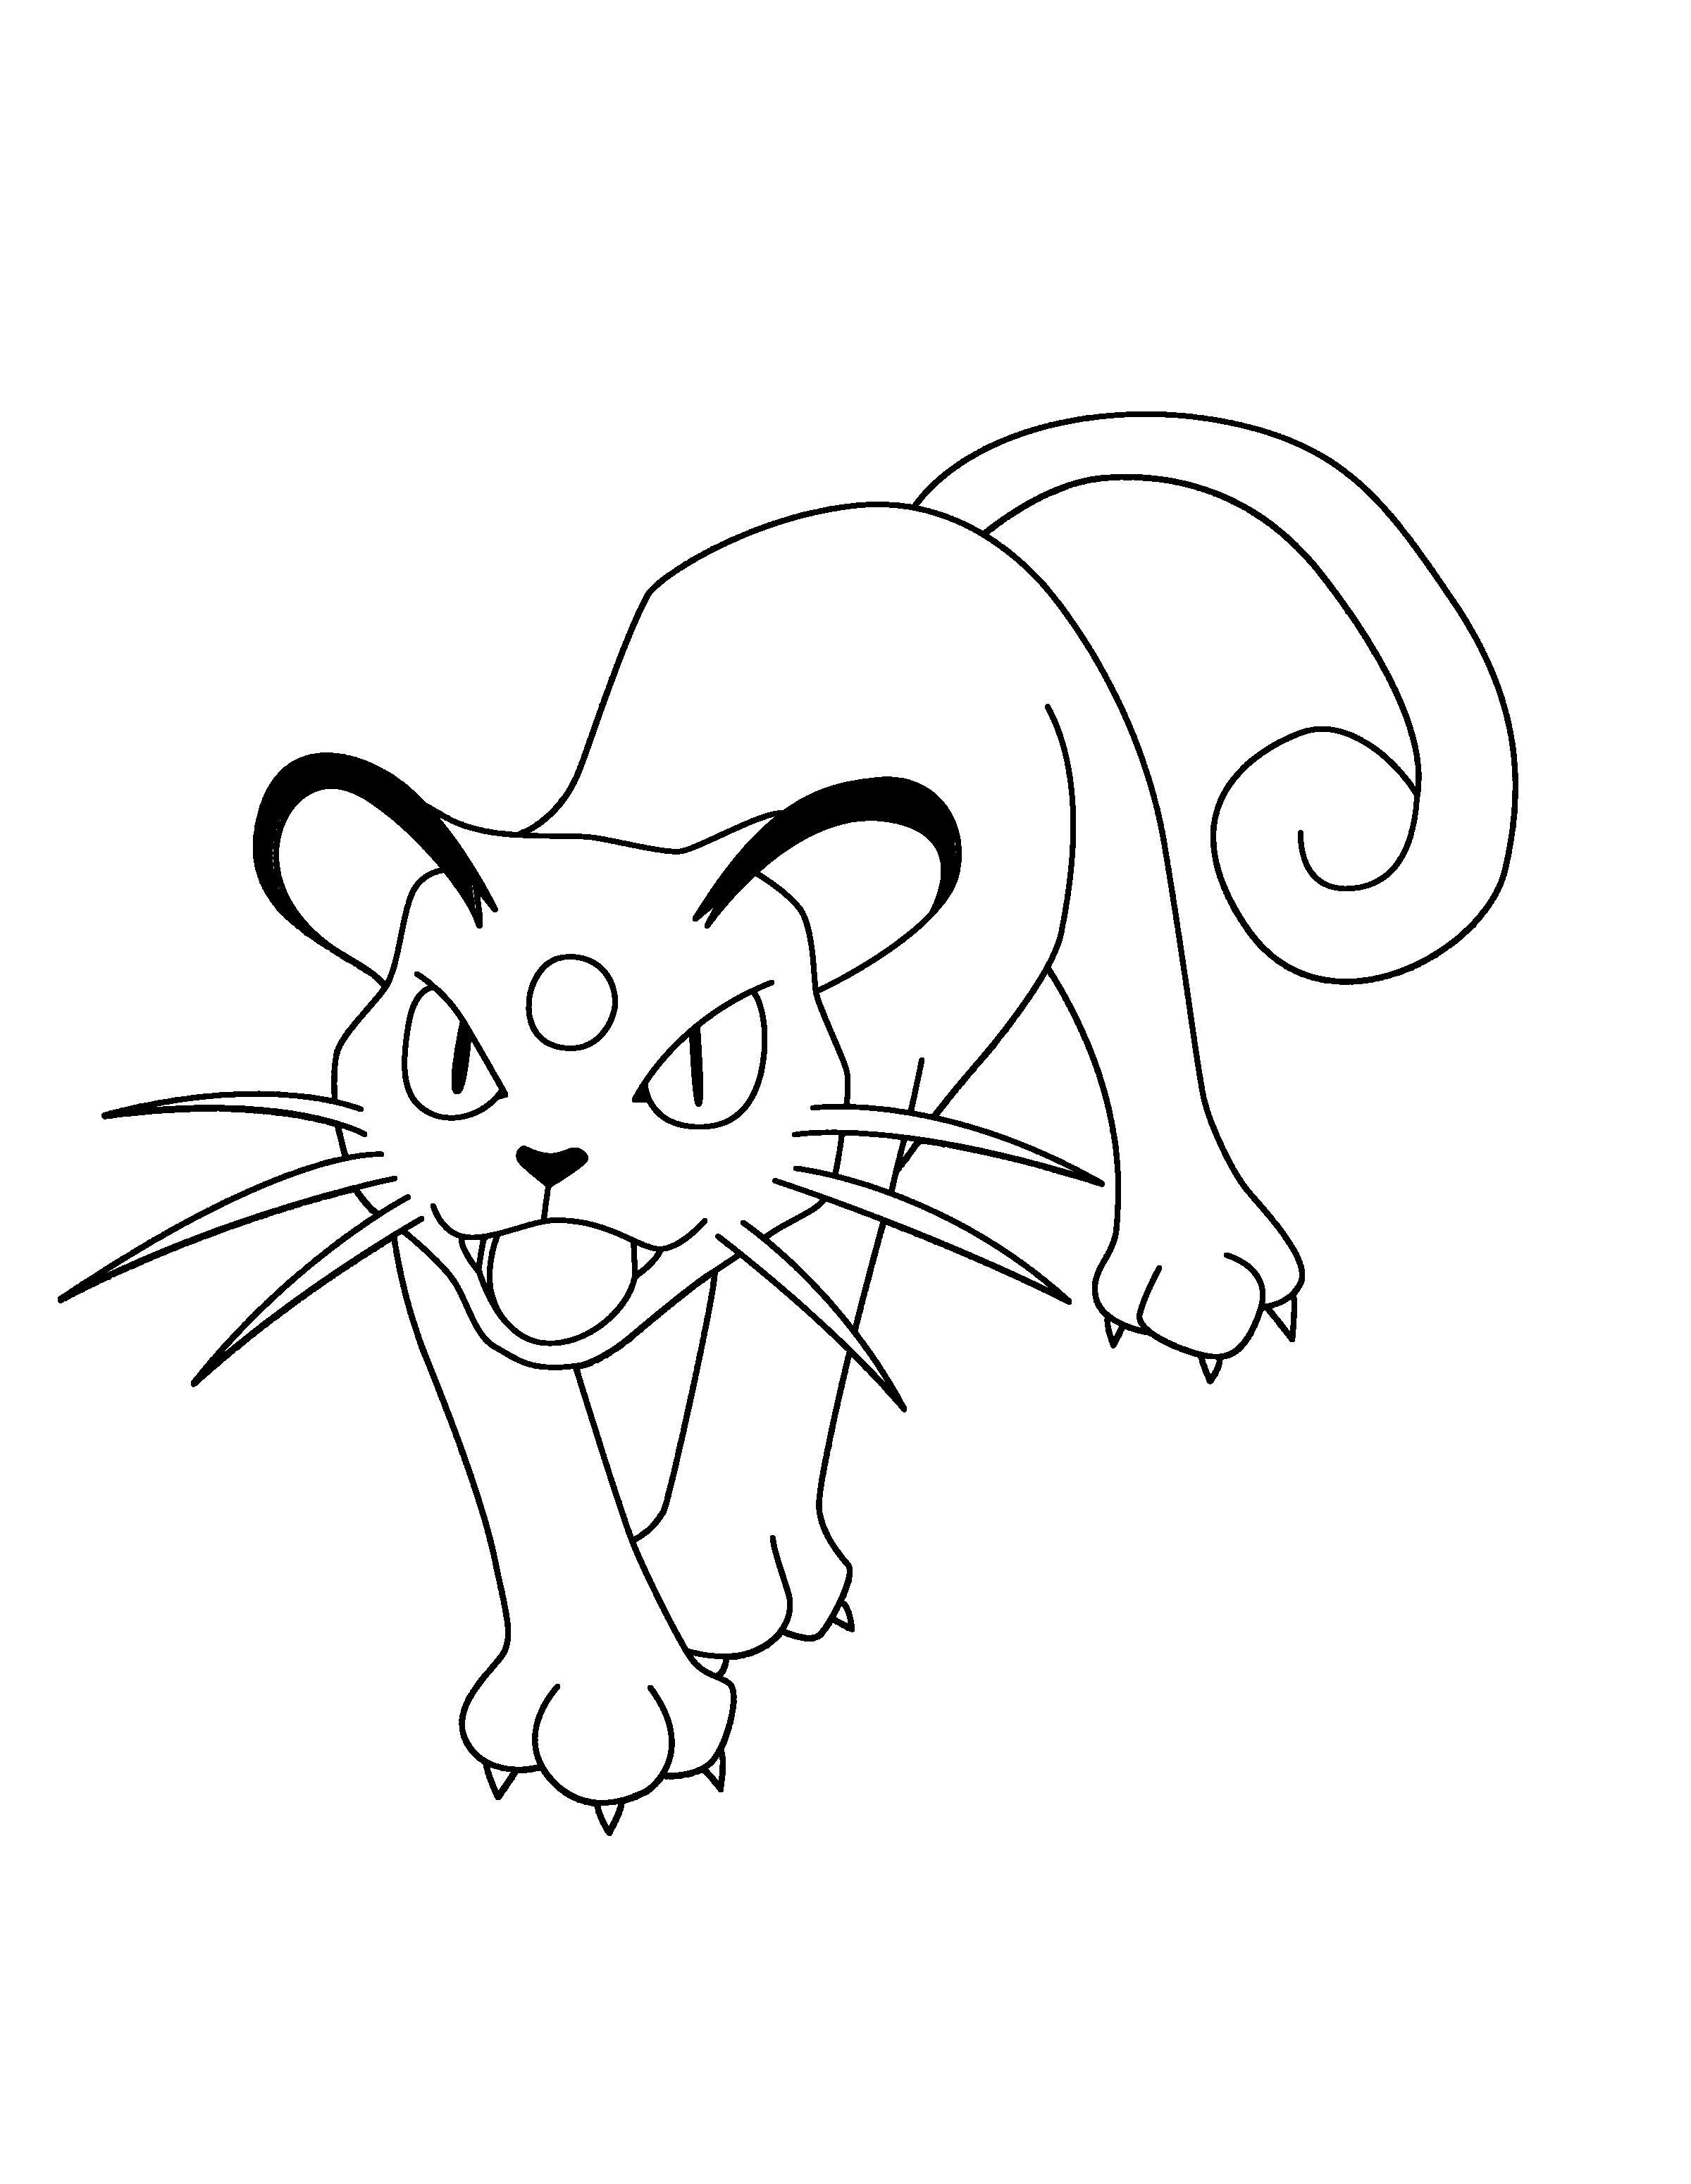 Kleurplaten Pokemon Mega.23 Mega Pokemon Coloring Pages Pictures Free Coloring Pages